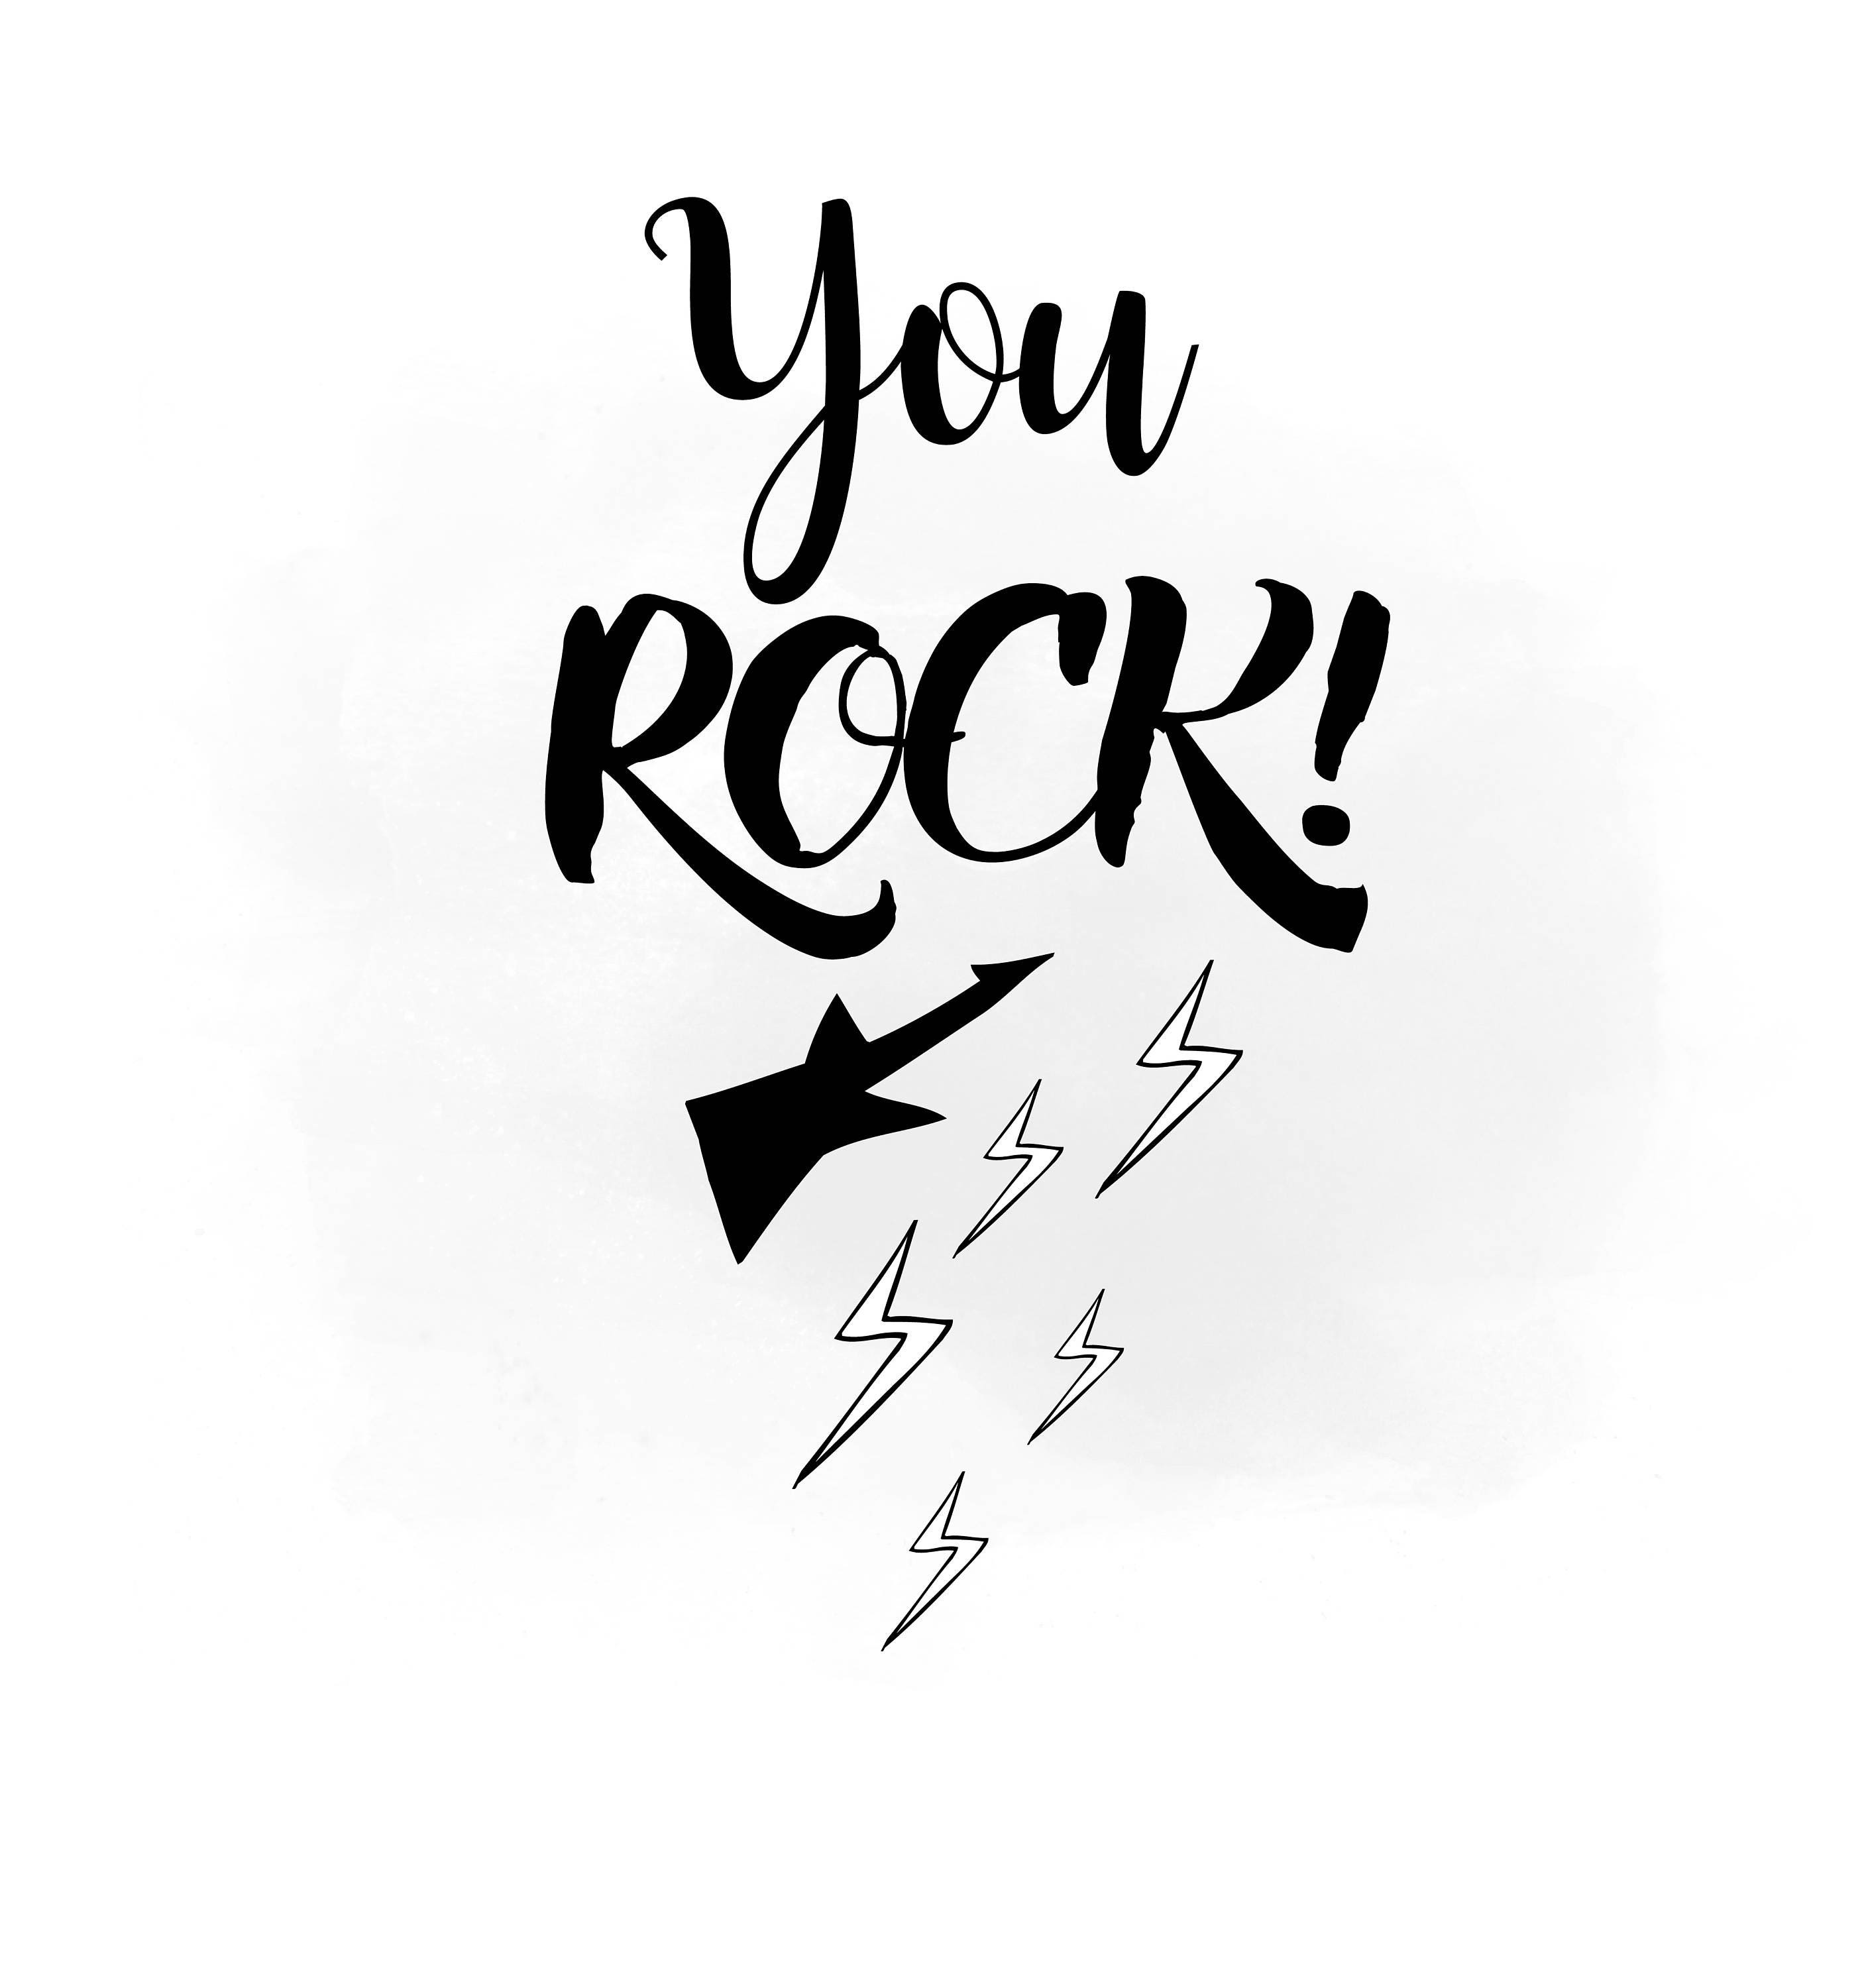 you rock svg clipart rock n roll svg you rock clipart you rock rh etsystudio com you are my rock clipart you rock girl clipart